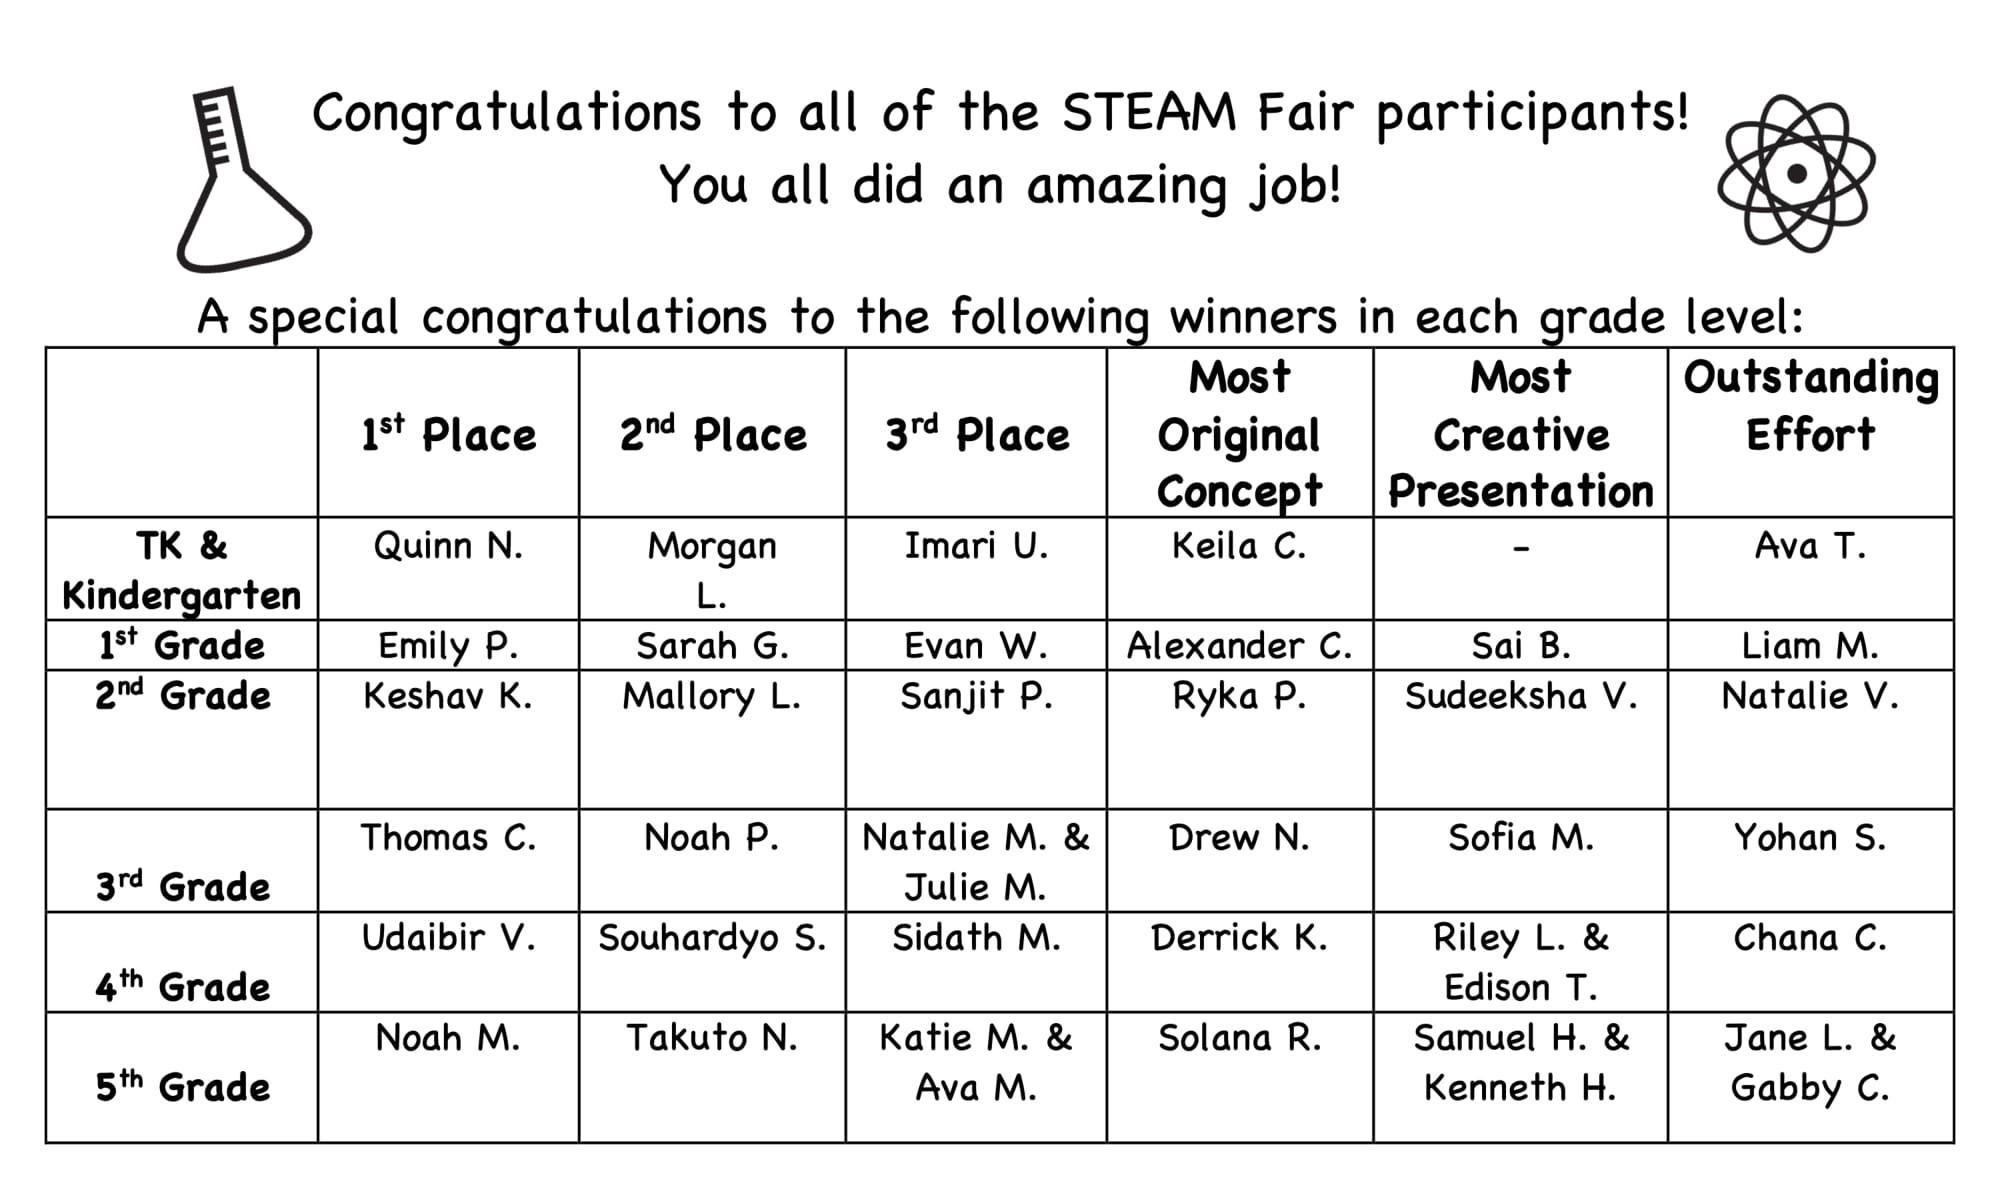 Steam Fair Winners image